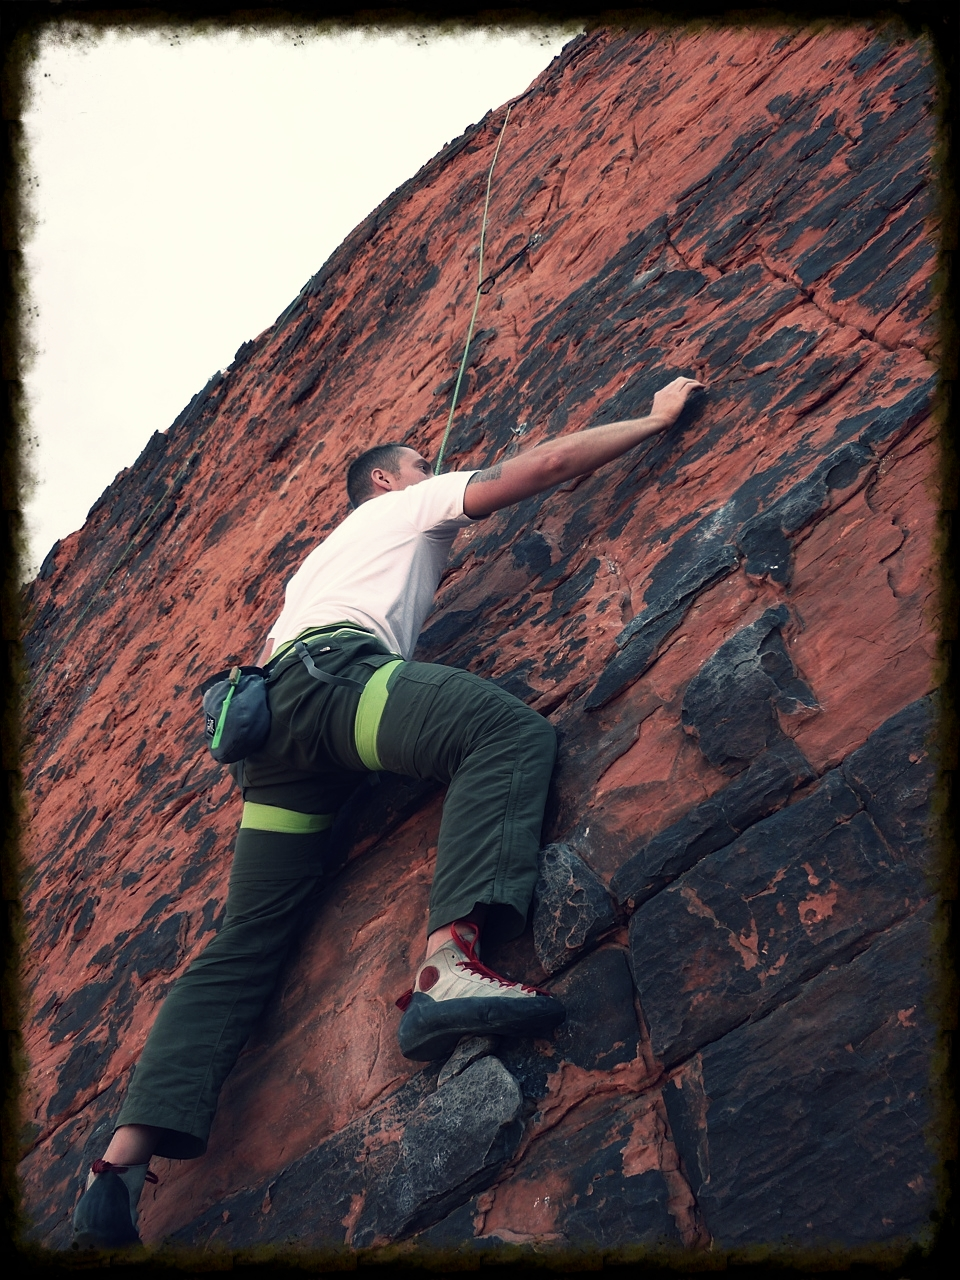 Climbing at Red Rocks